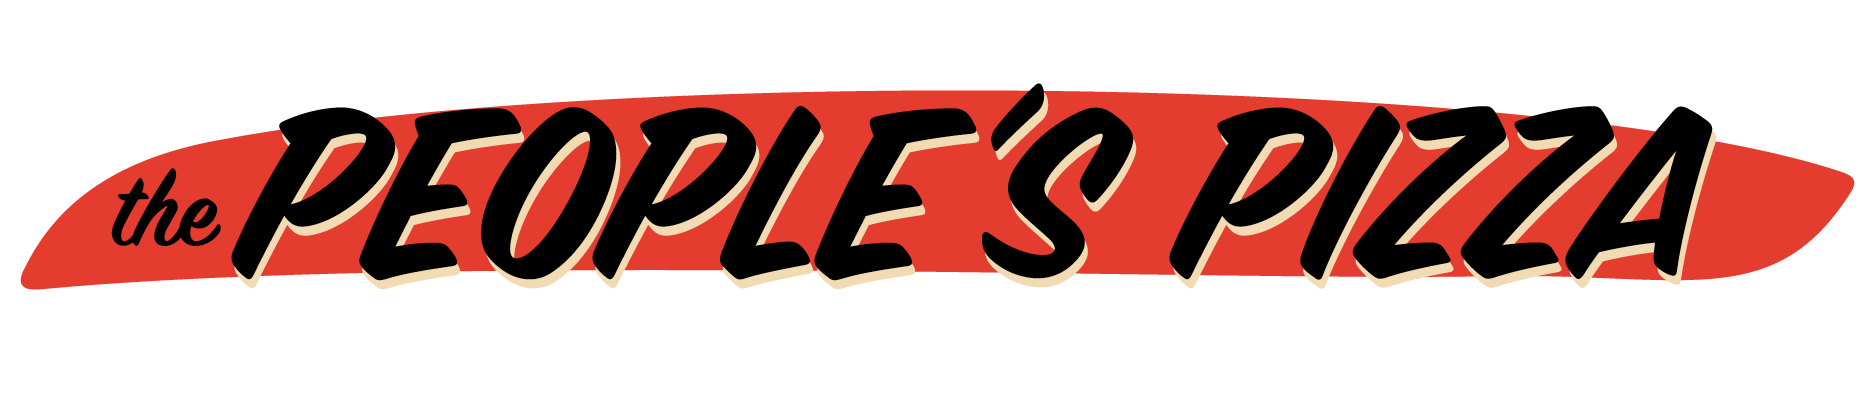 ThePeople'sPizza.png